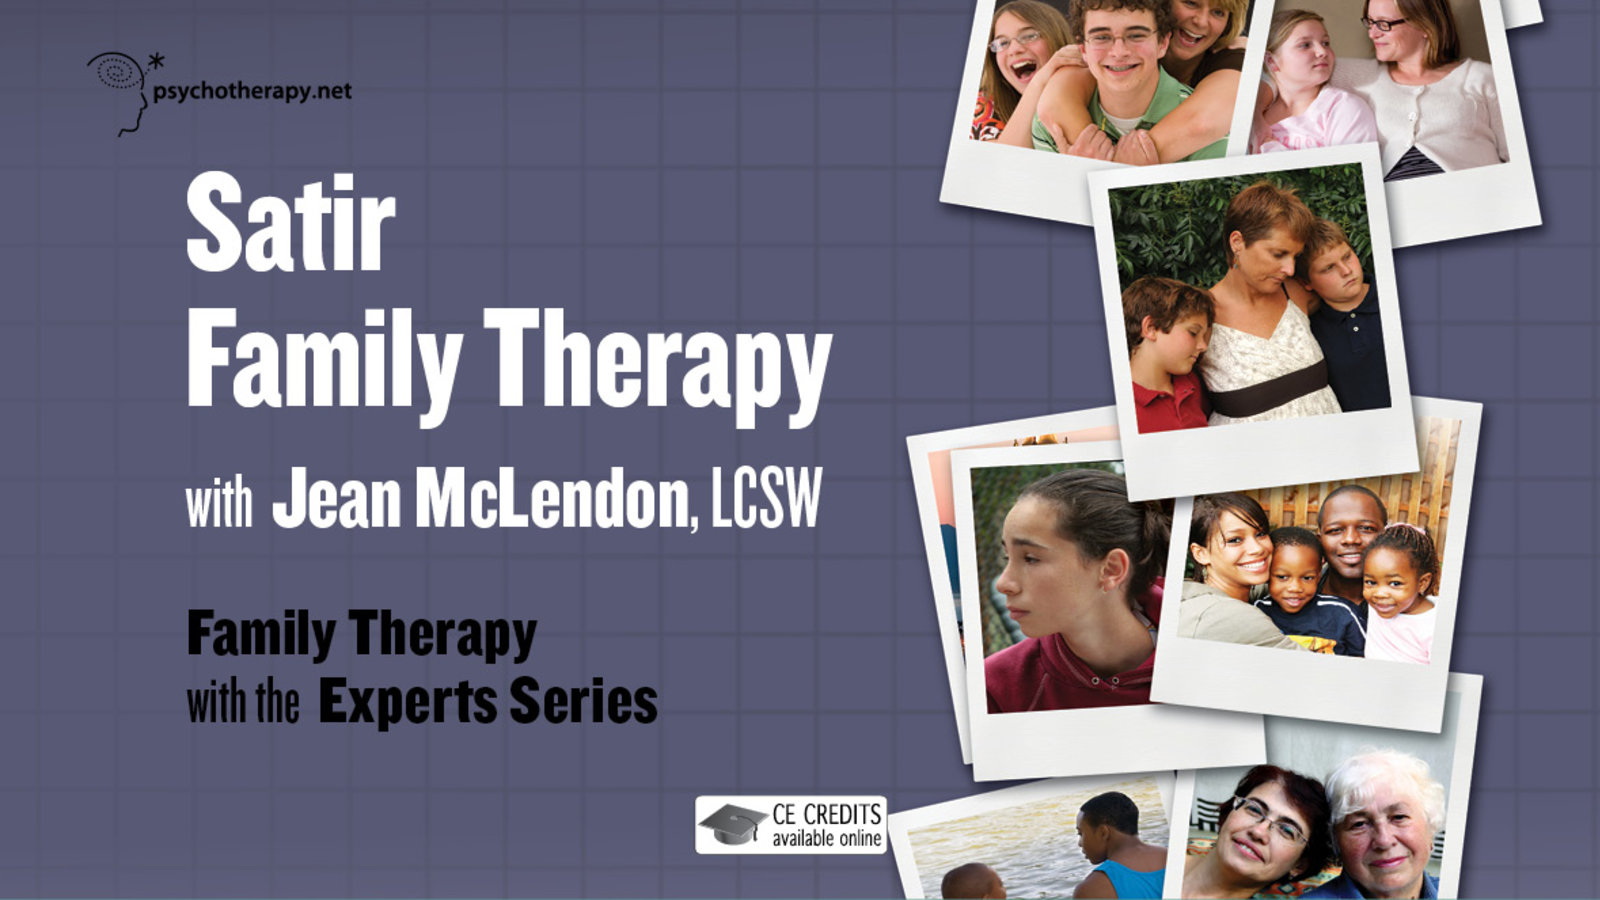 Satir Family Therapy - With Jean McLendon